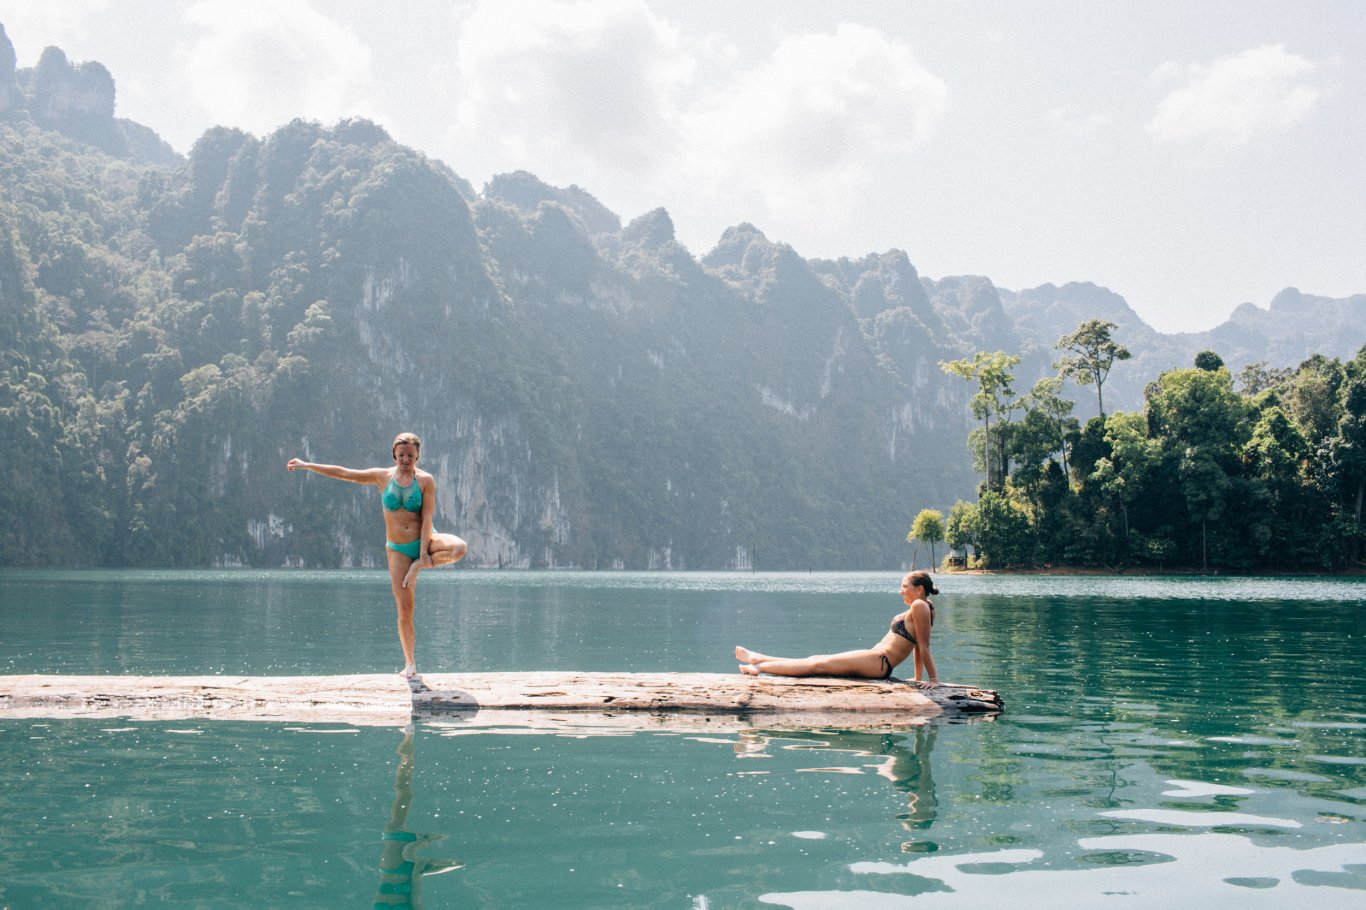 Two girls on the log in the middle of the lake at Khao Sok National park in Thailand